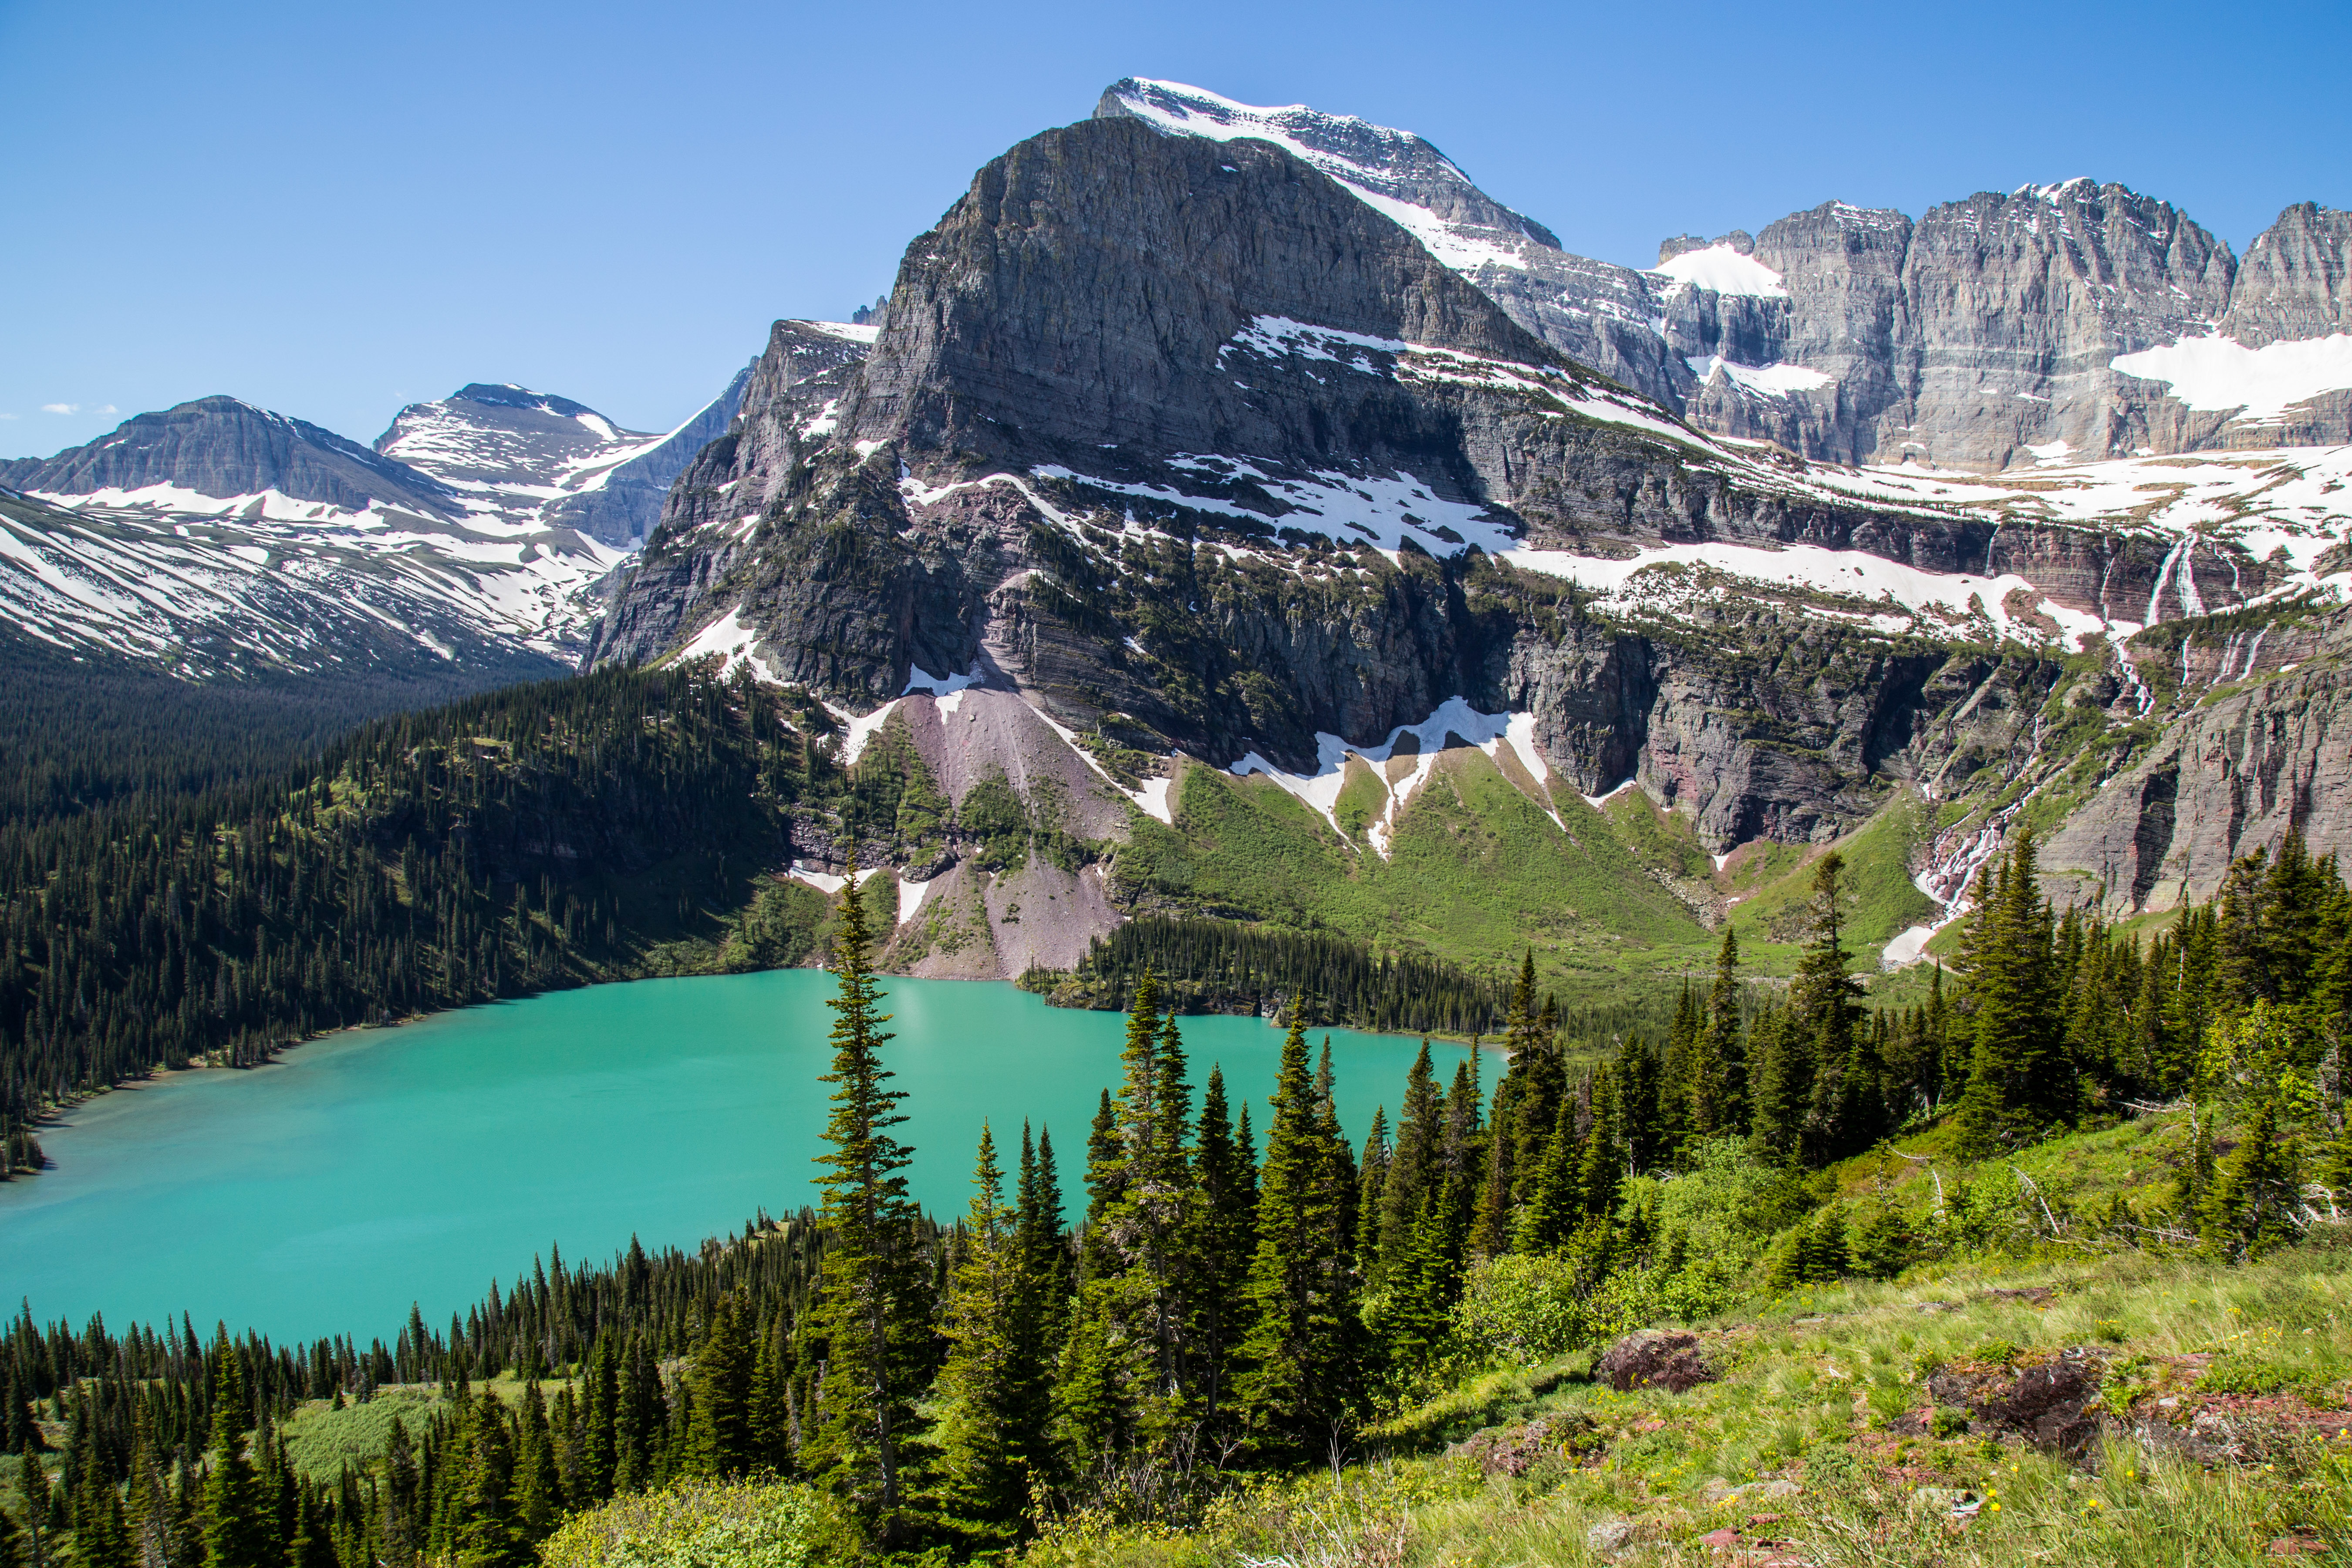 Glacier National Park - Self Drive Tours in the USA